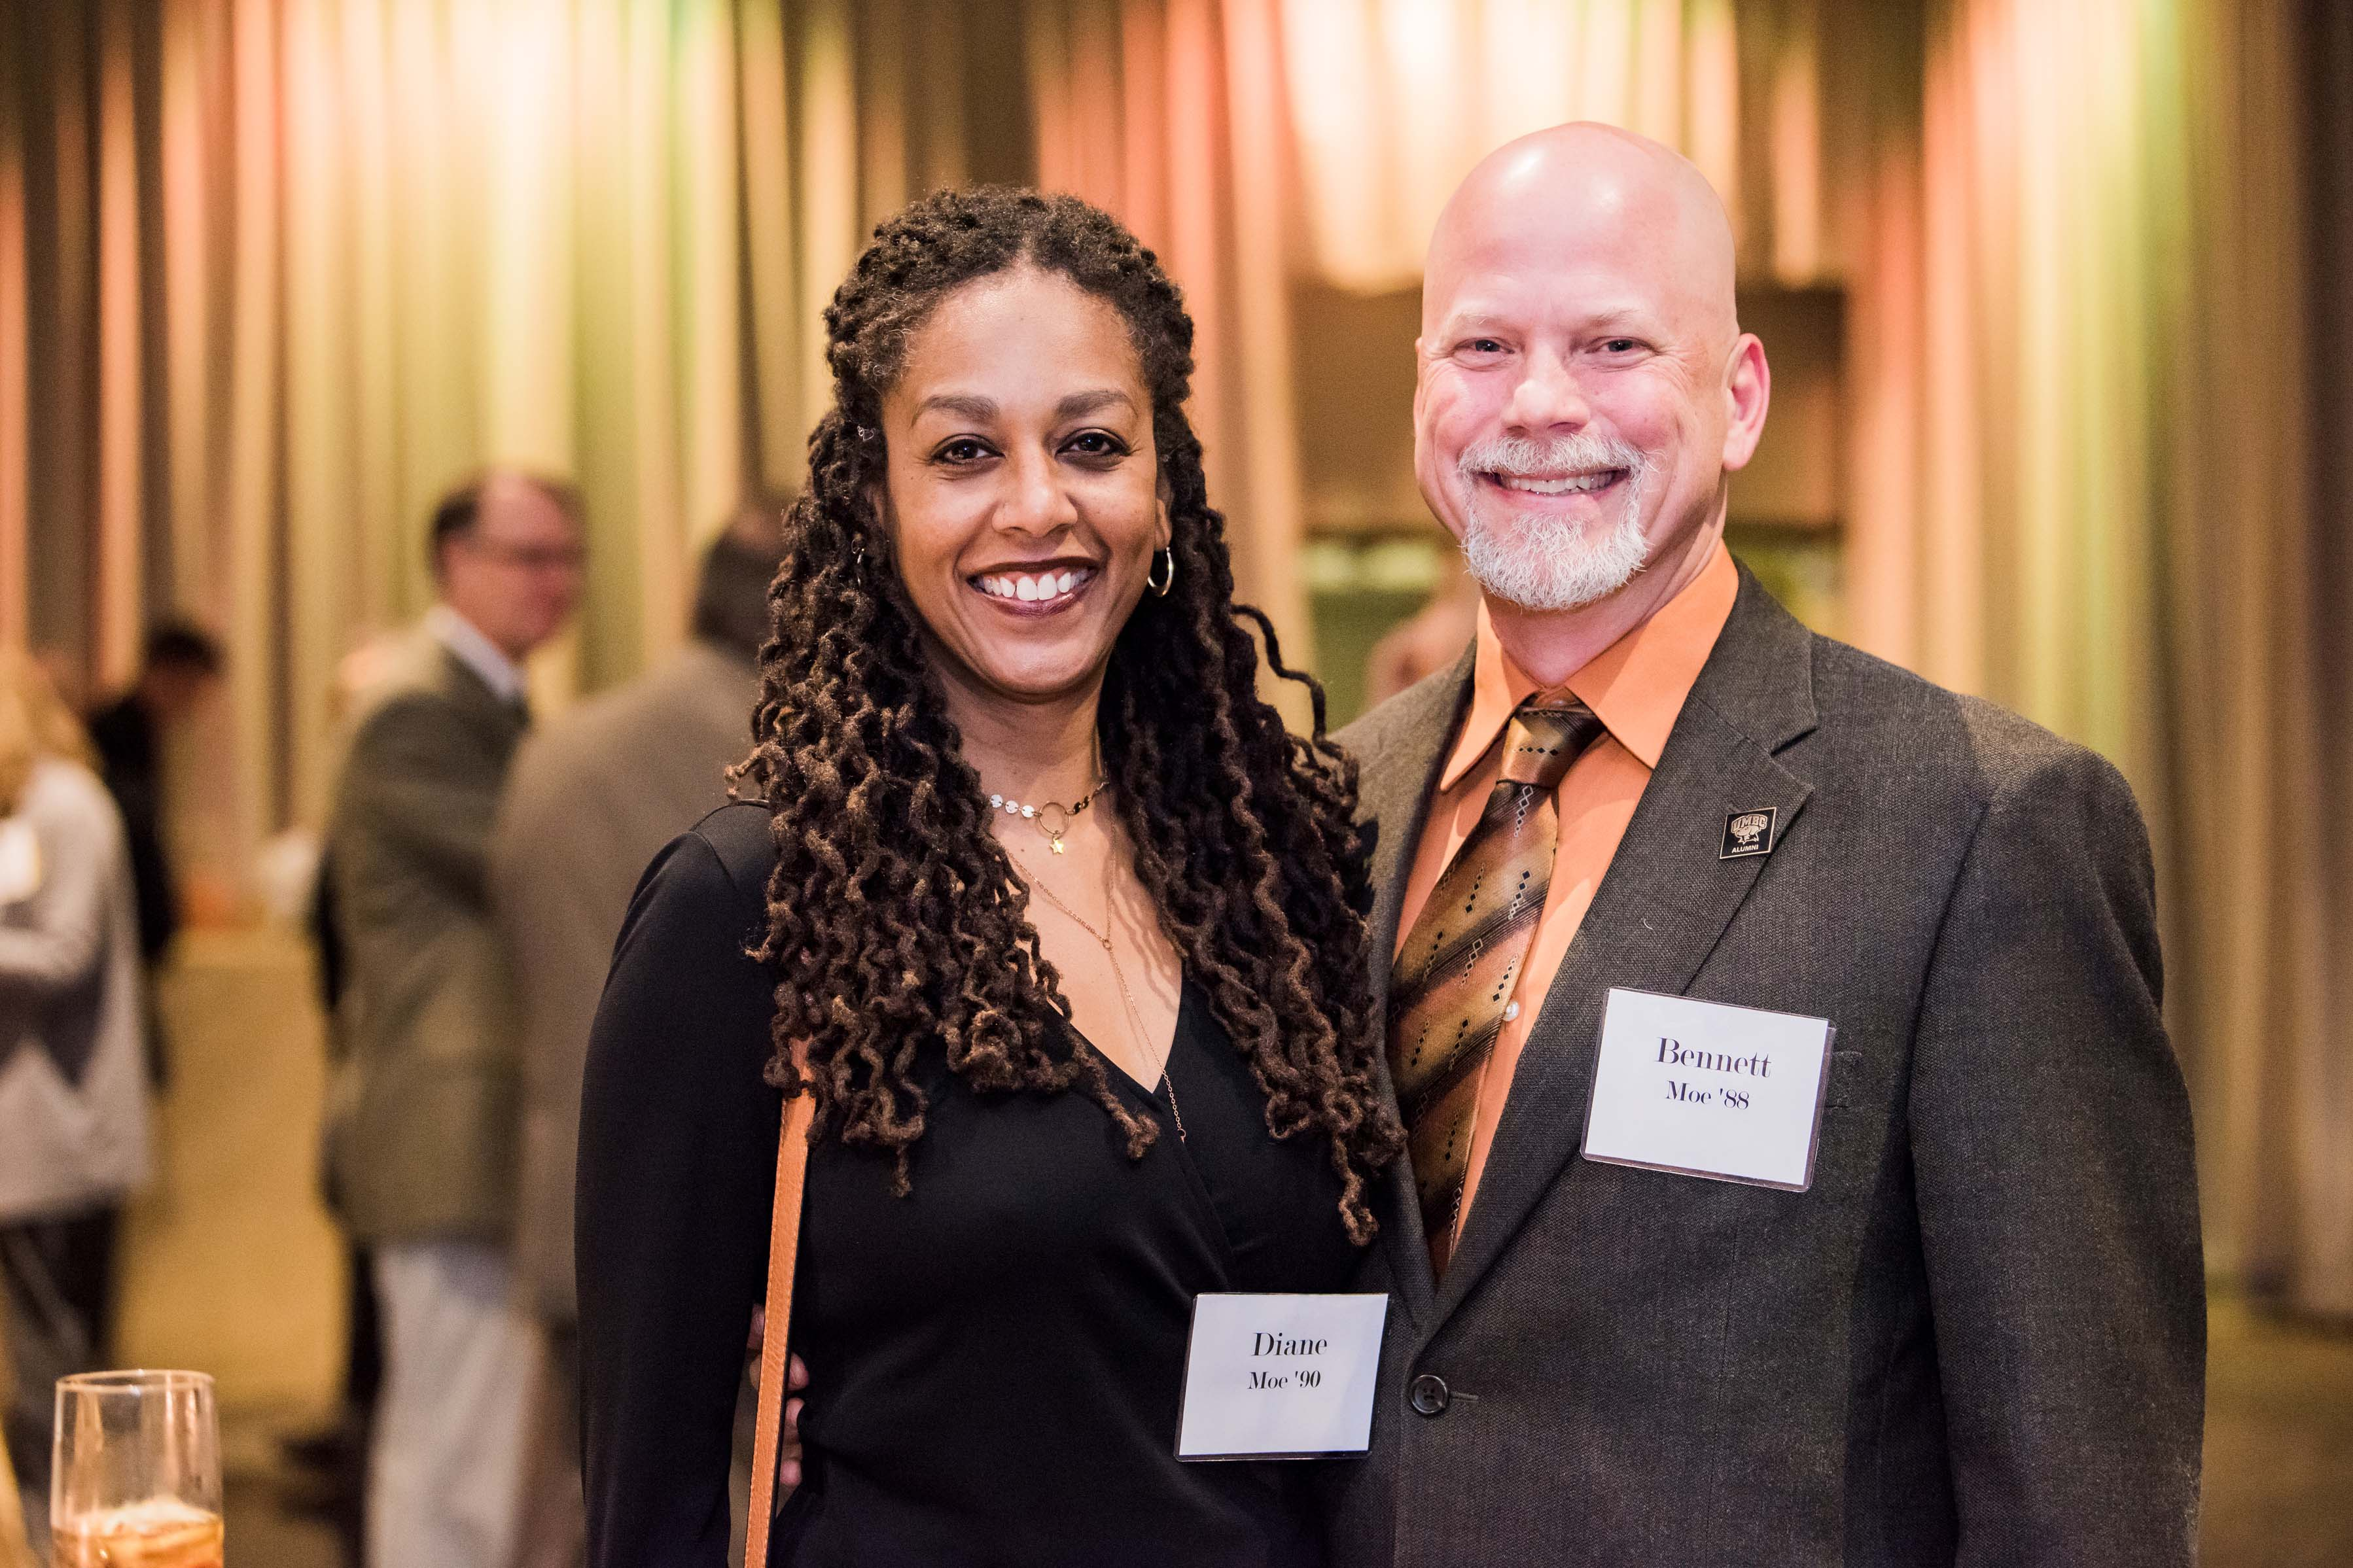 Diane and Bennett Moe pose together for Annual celebration